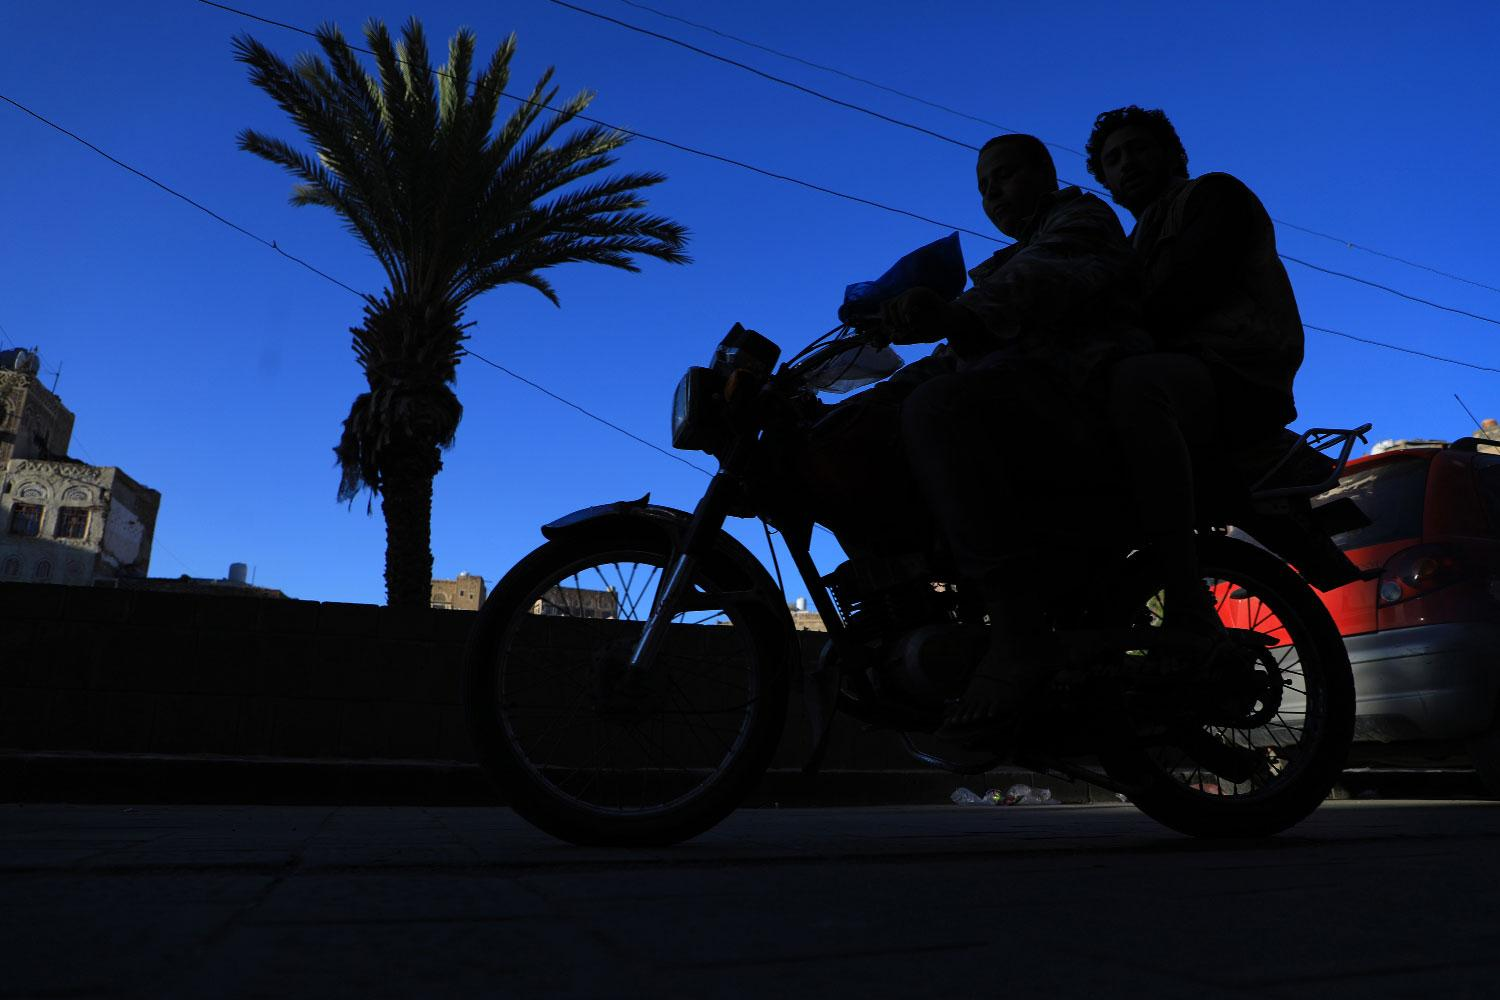 Yemenis ride a motorbike past historical buildings in the old quarter of the capital Sanaa on November 14, 2018.